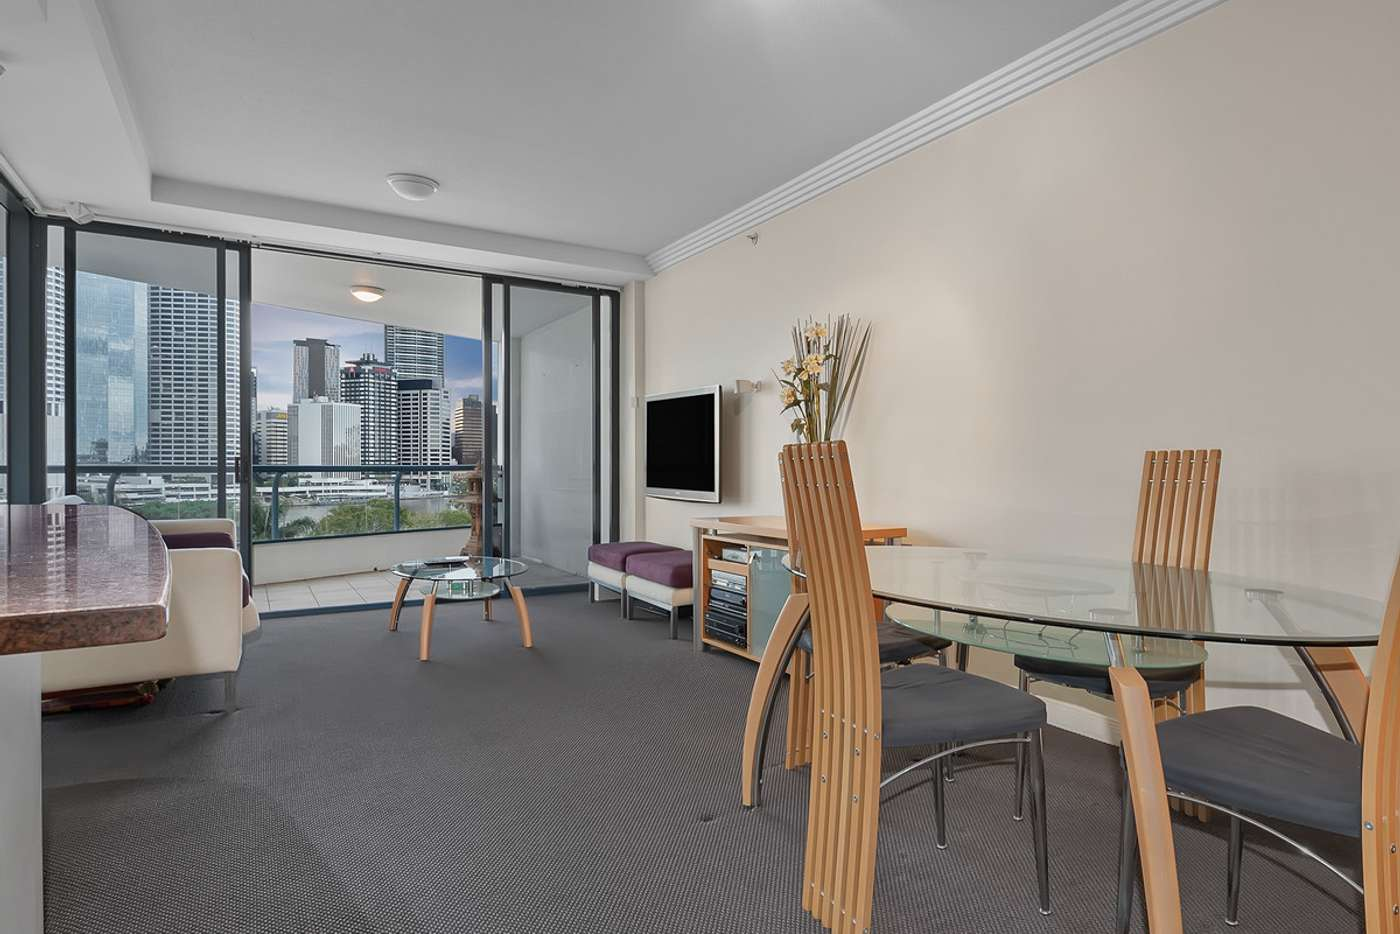 Fifth view of Homely apartment listing, 321 Main Street, Kangaroo Point QLD 4169